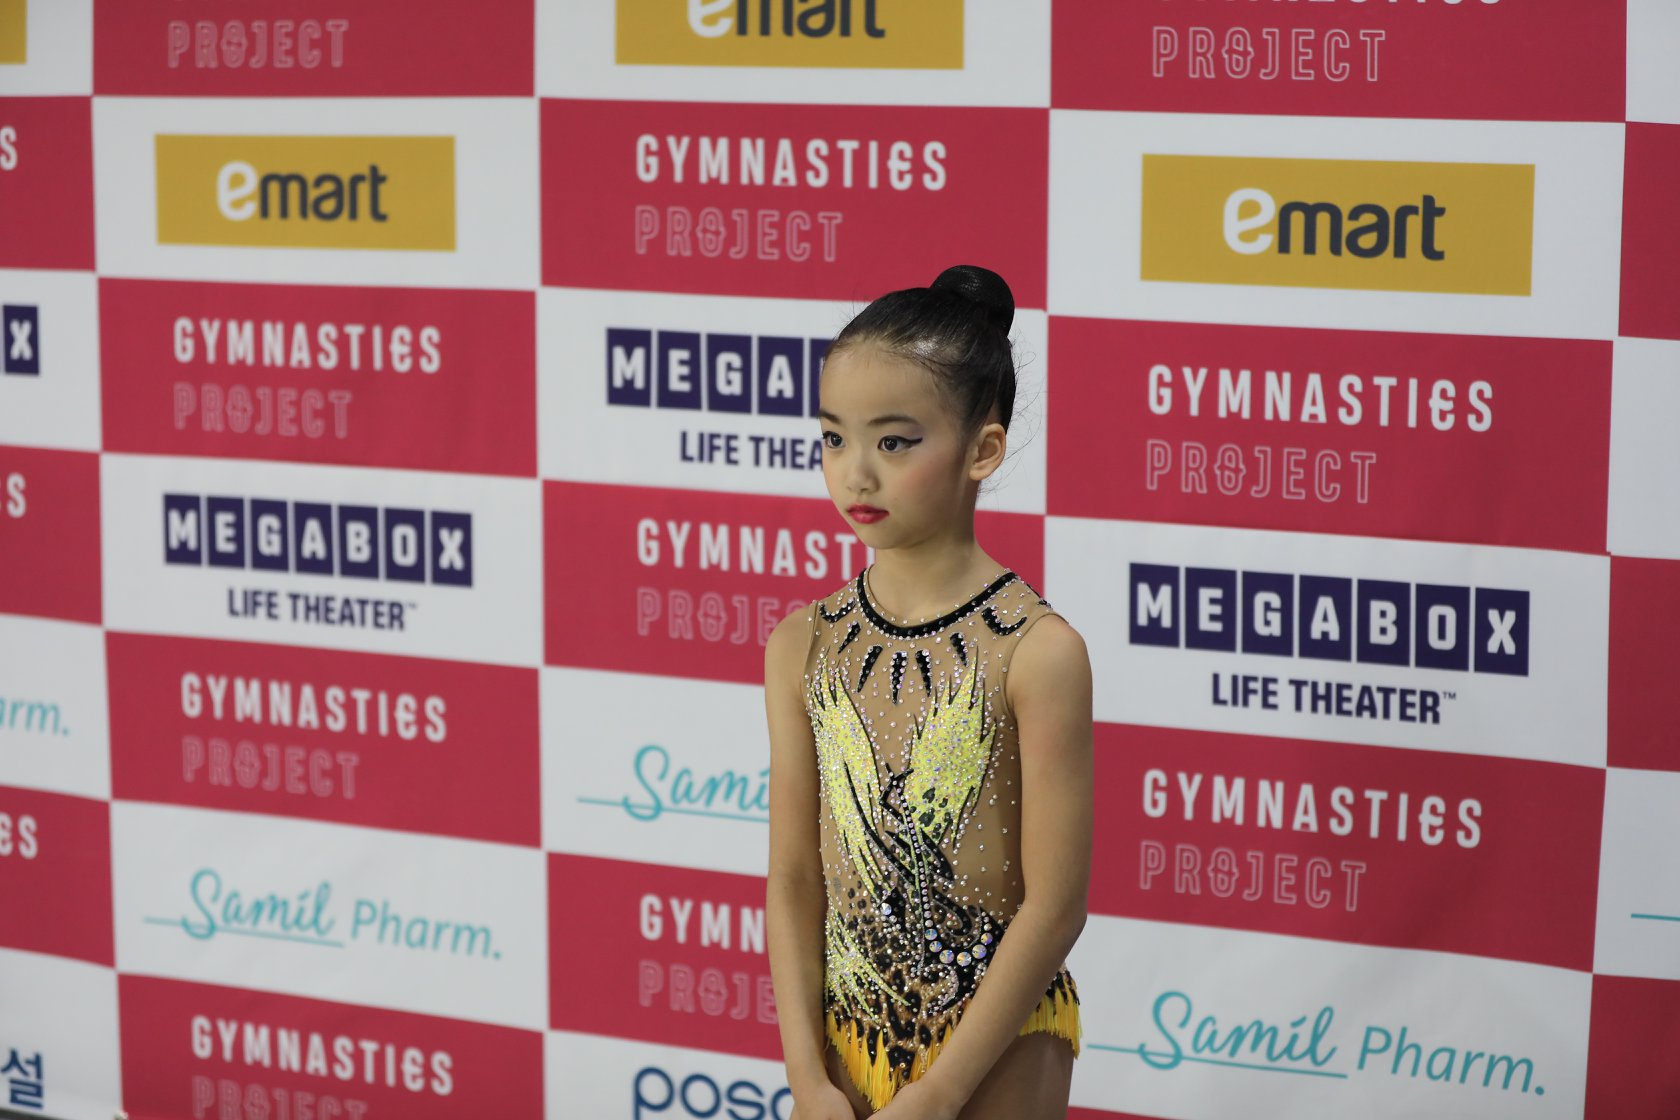 Son YeonJae Gymnastics Project 2018 52